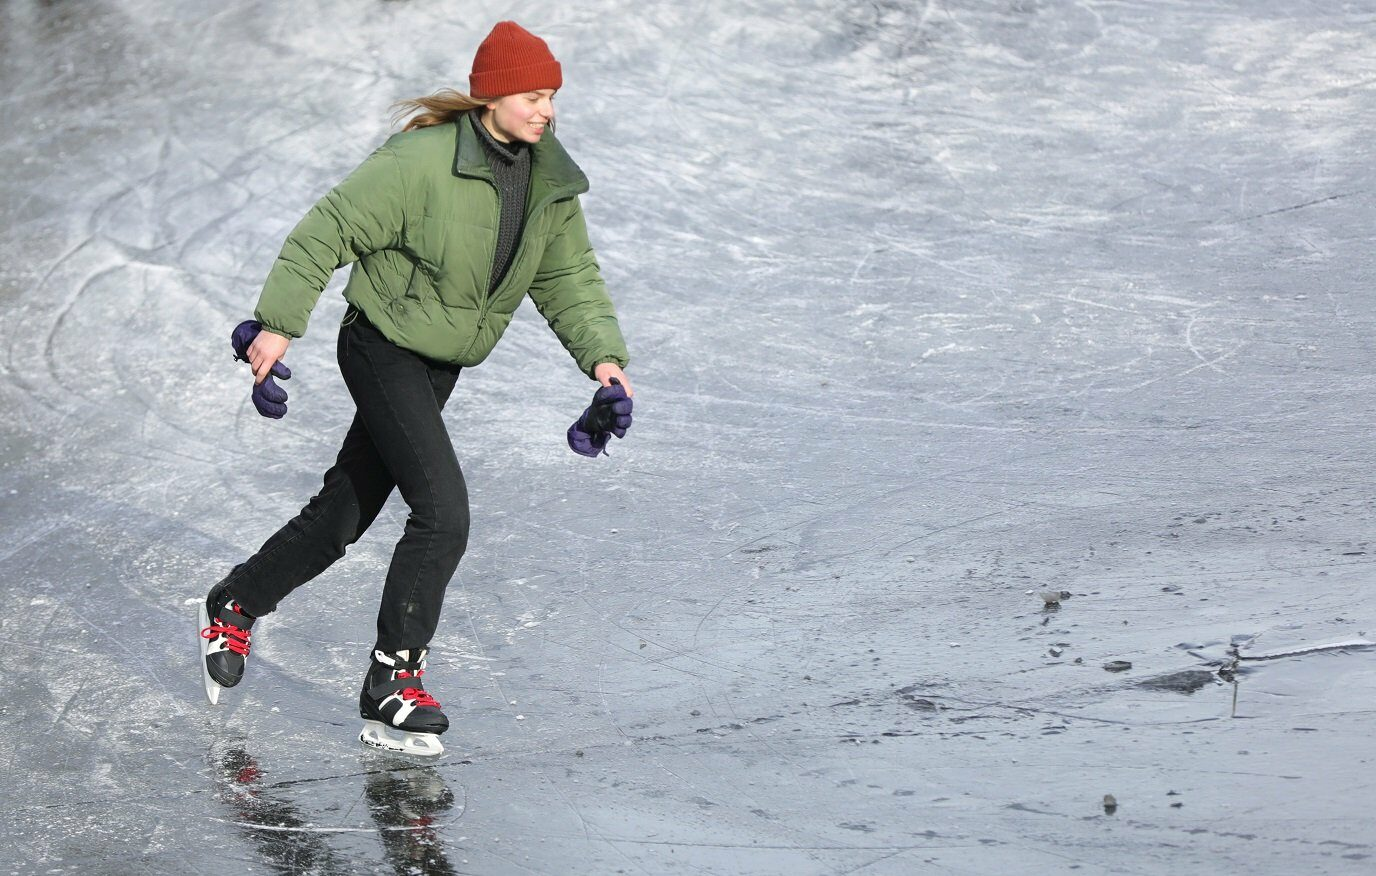 A woman ice skates during a cold snap across the country at the Prinsengracht in Amsterdam, Netherlands February 14, 2021.